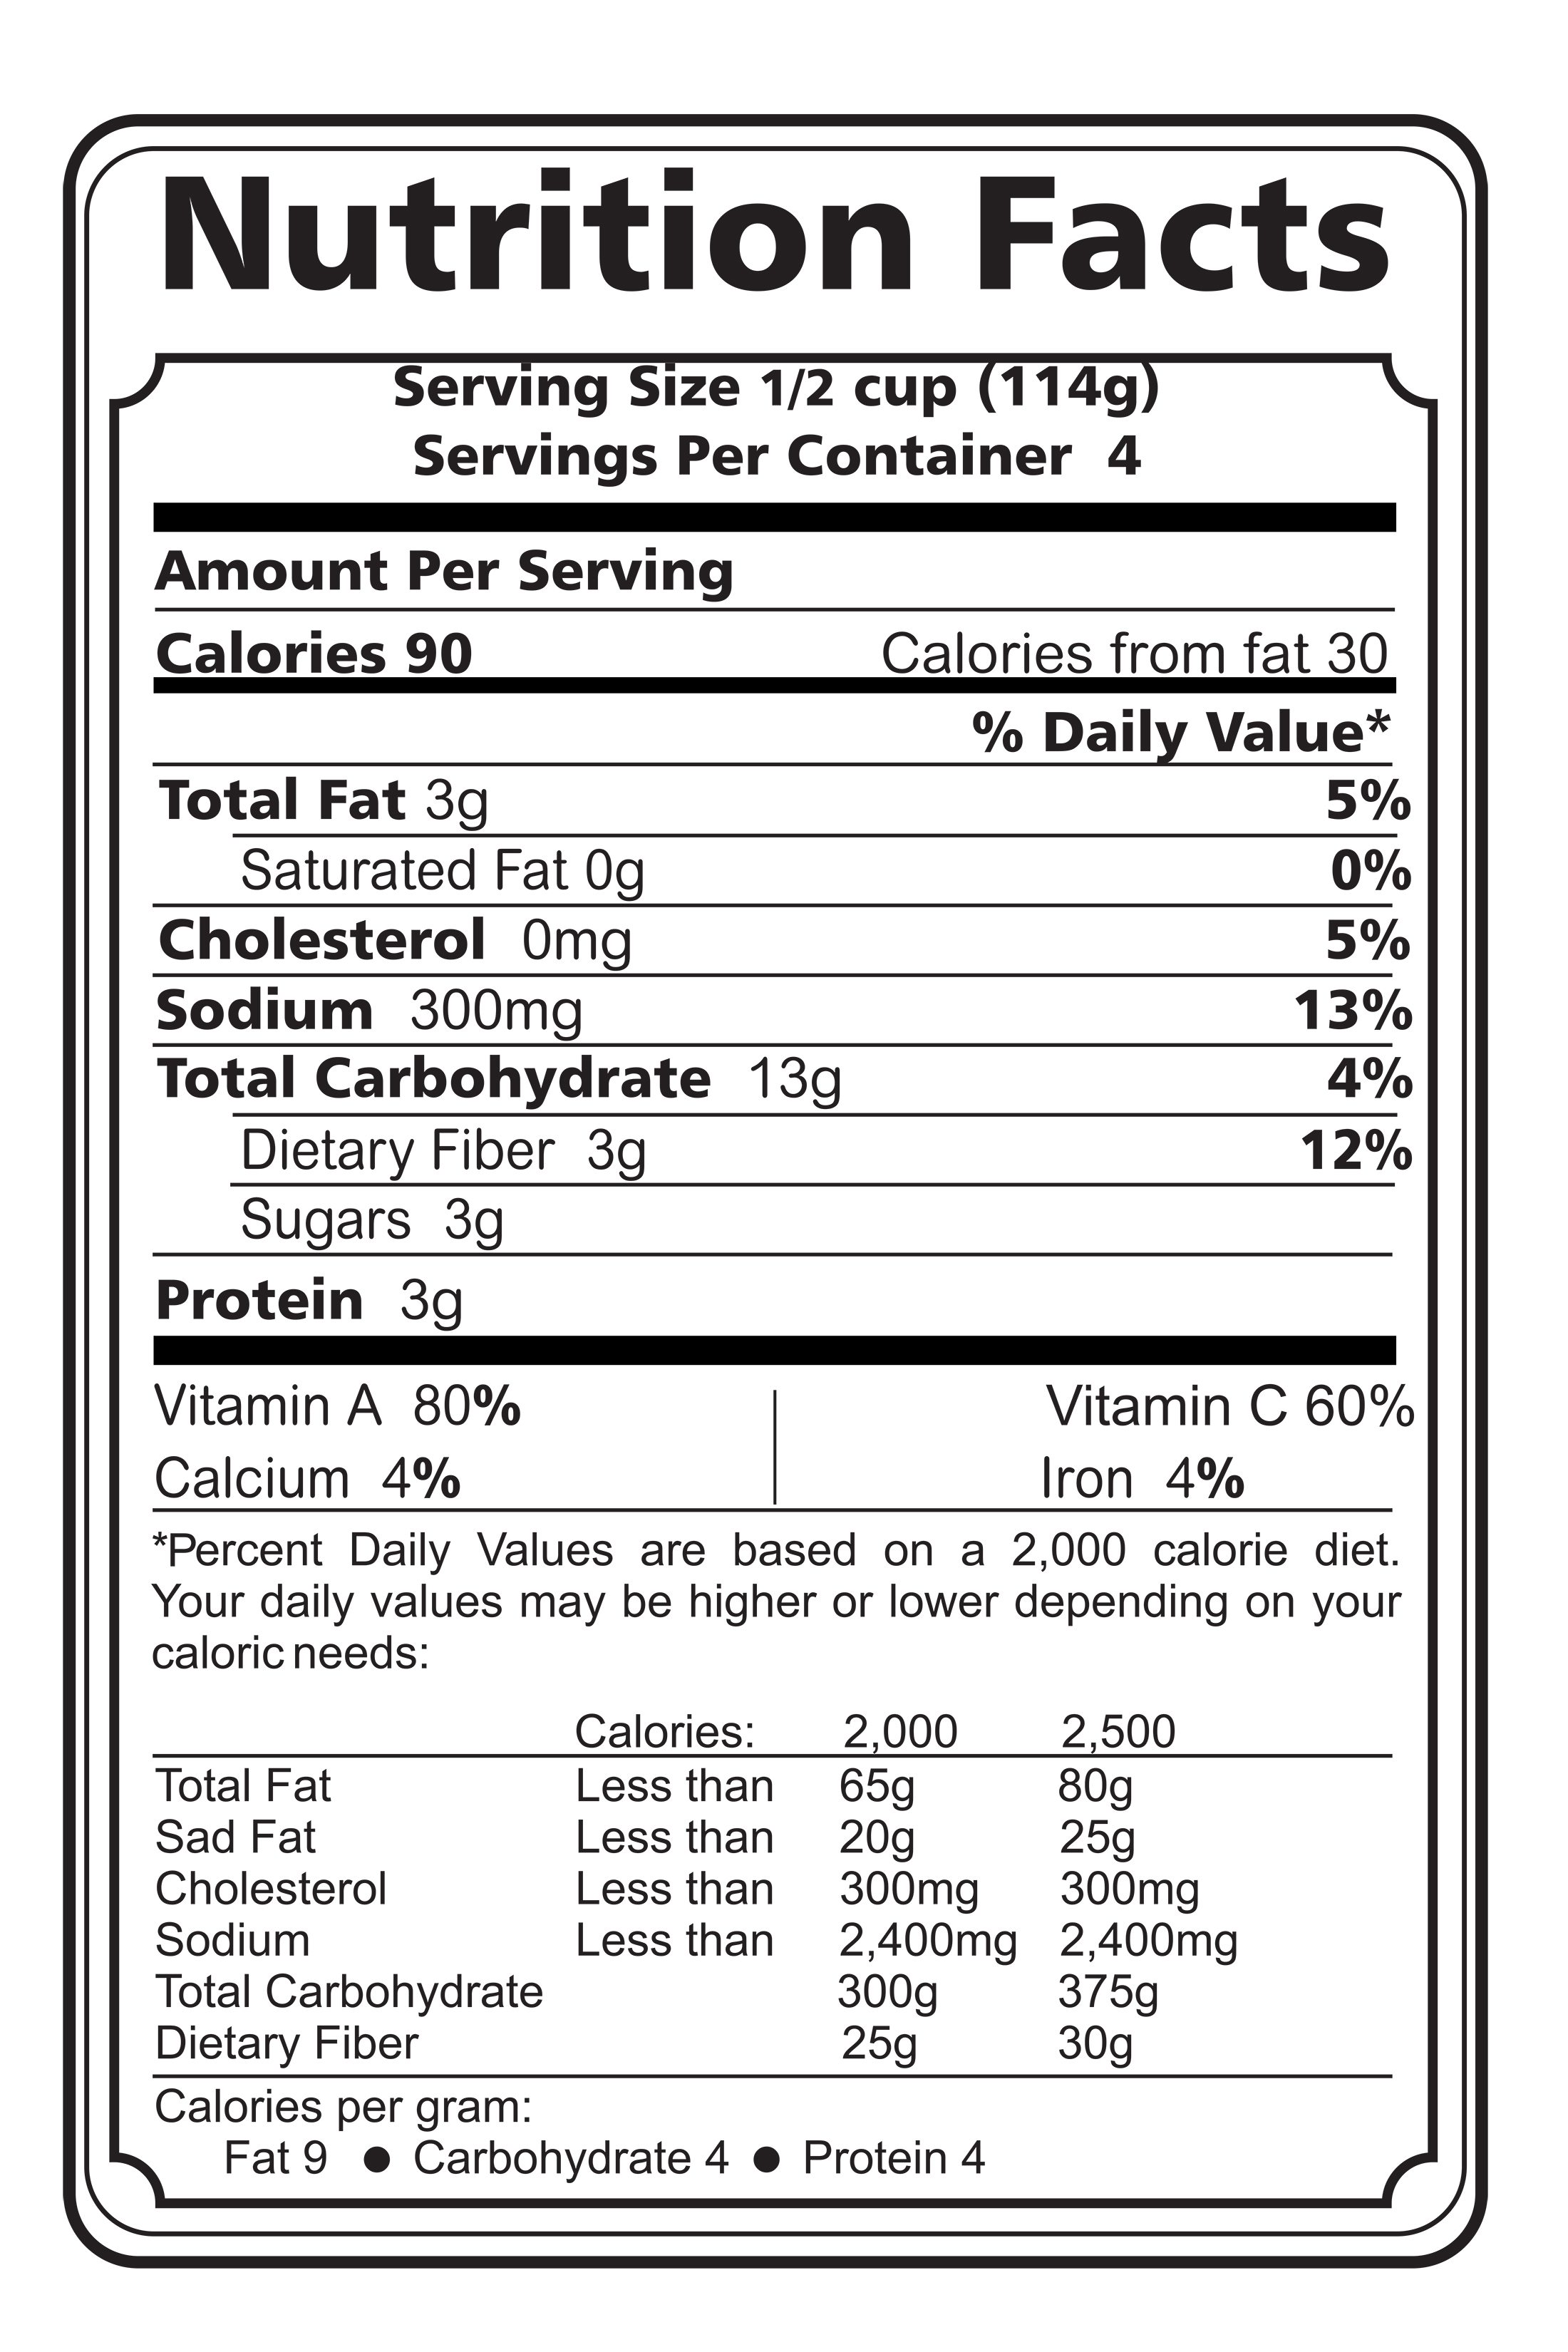 Worksheets Calorie Worksheet food label tips nutrition that you can download and print 8 5